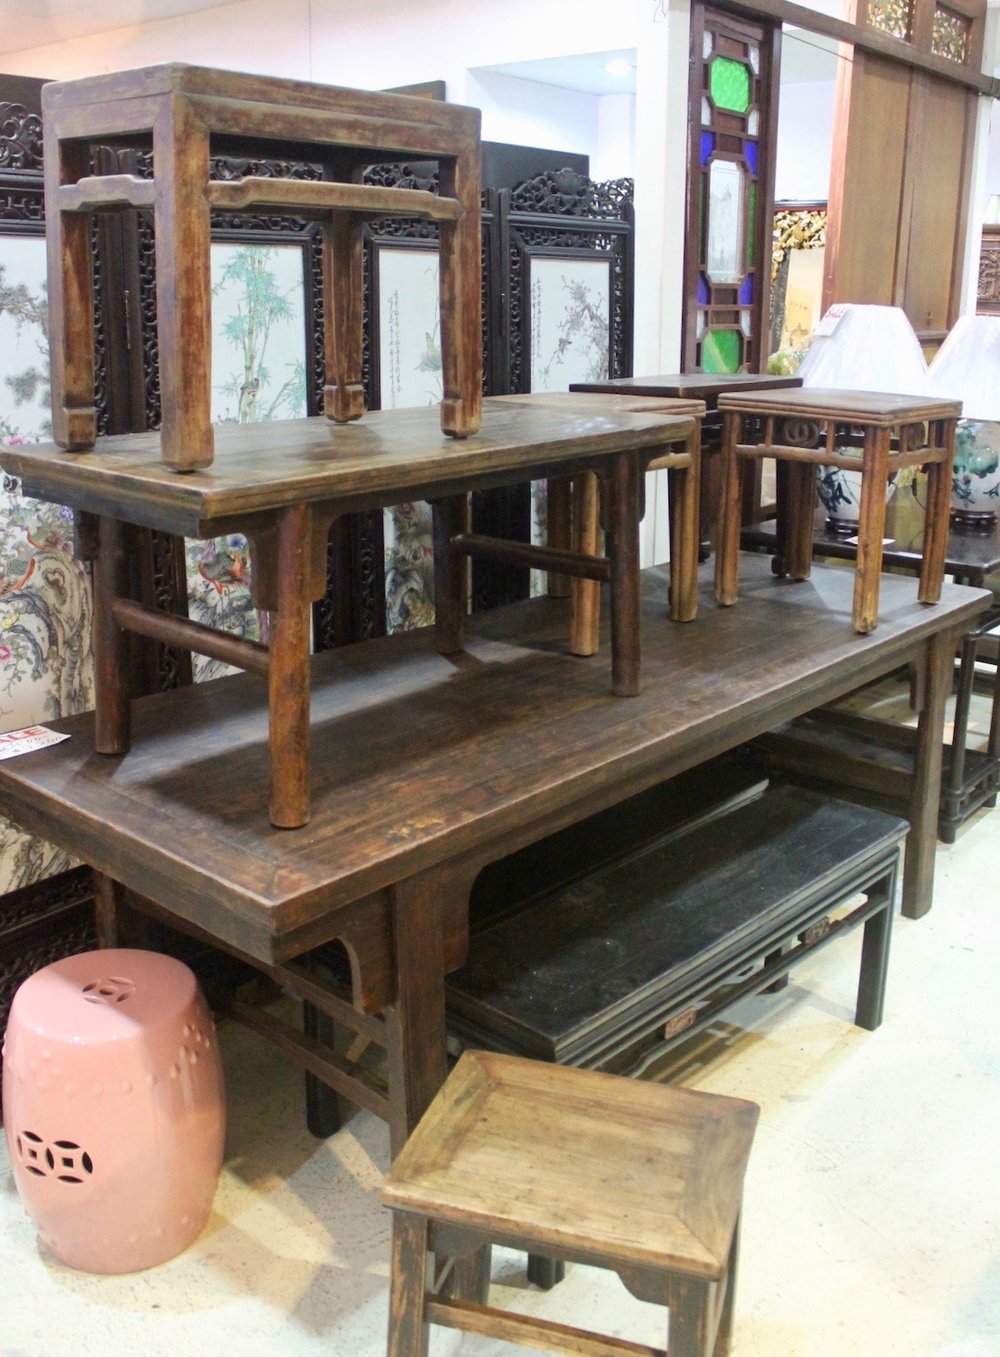 A wide selection old benches and stools from China